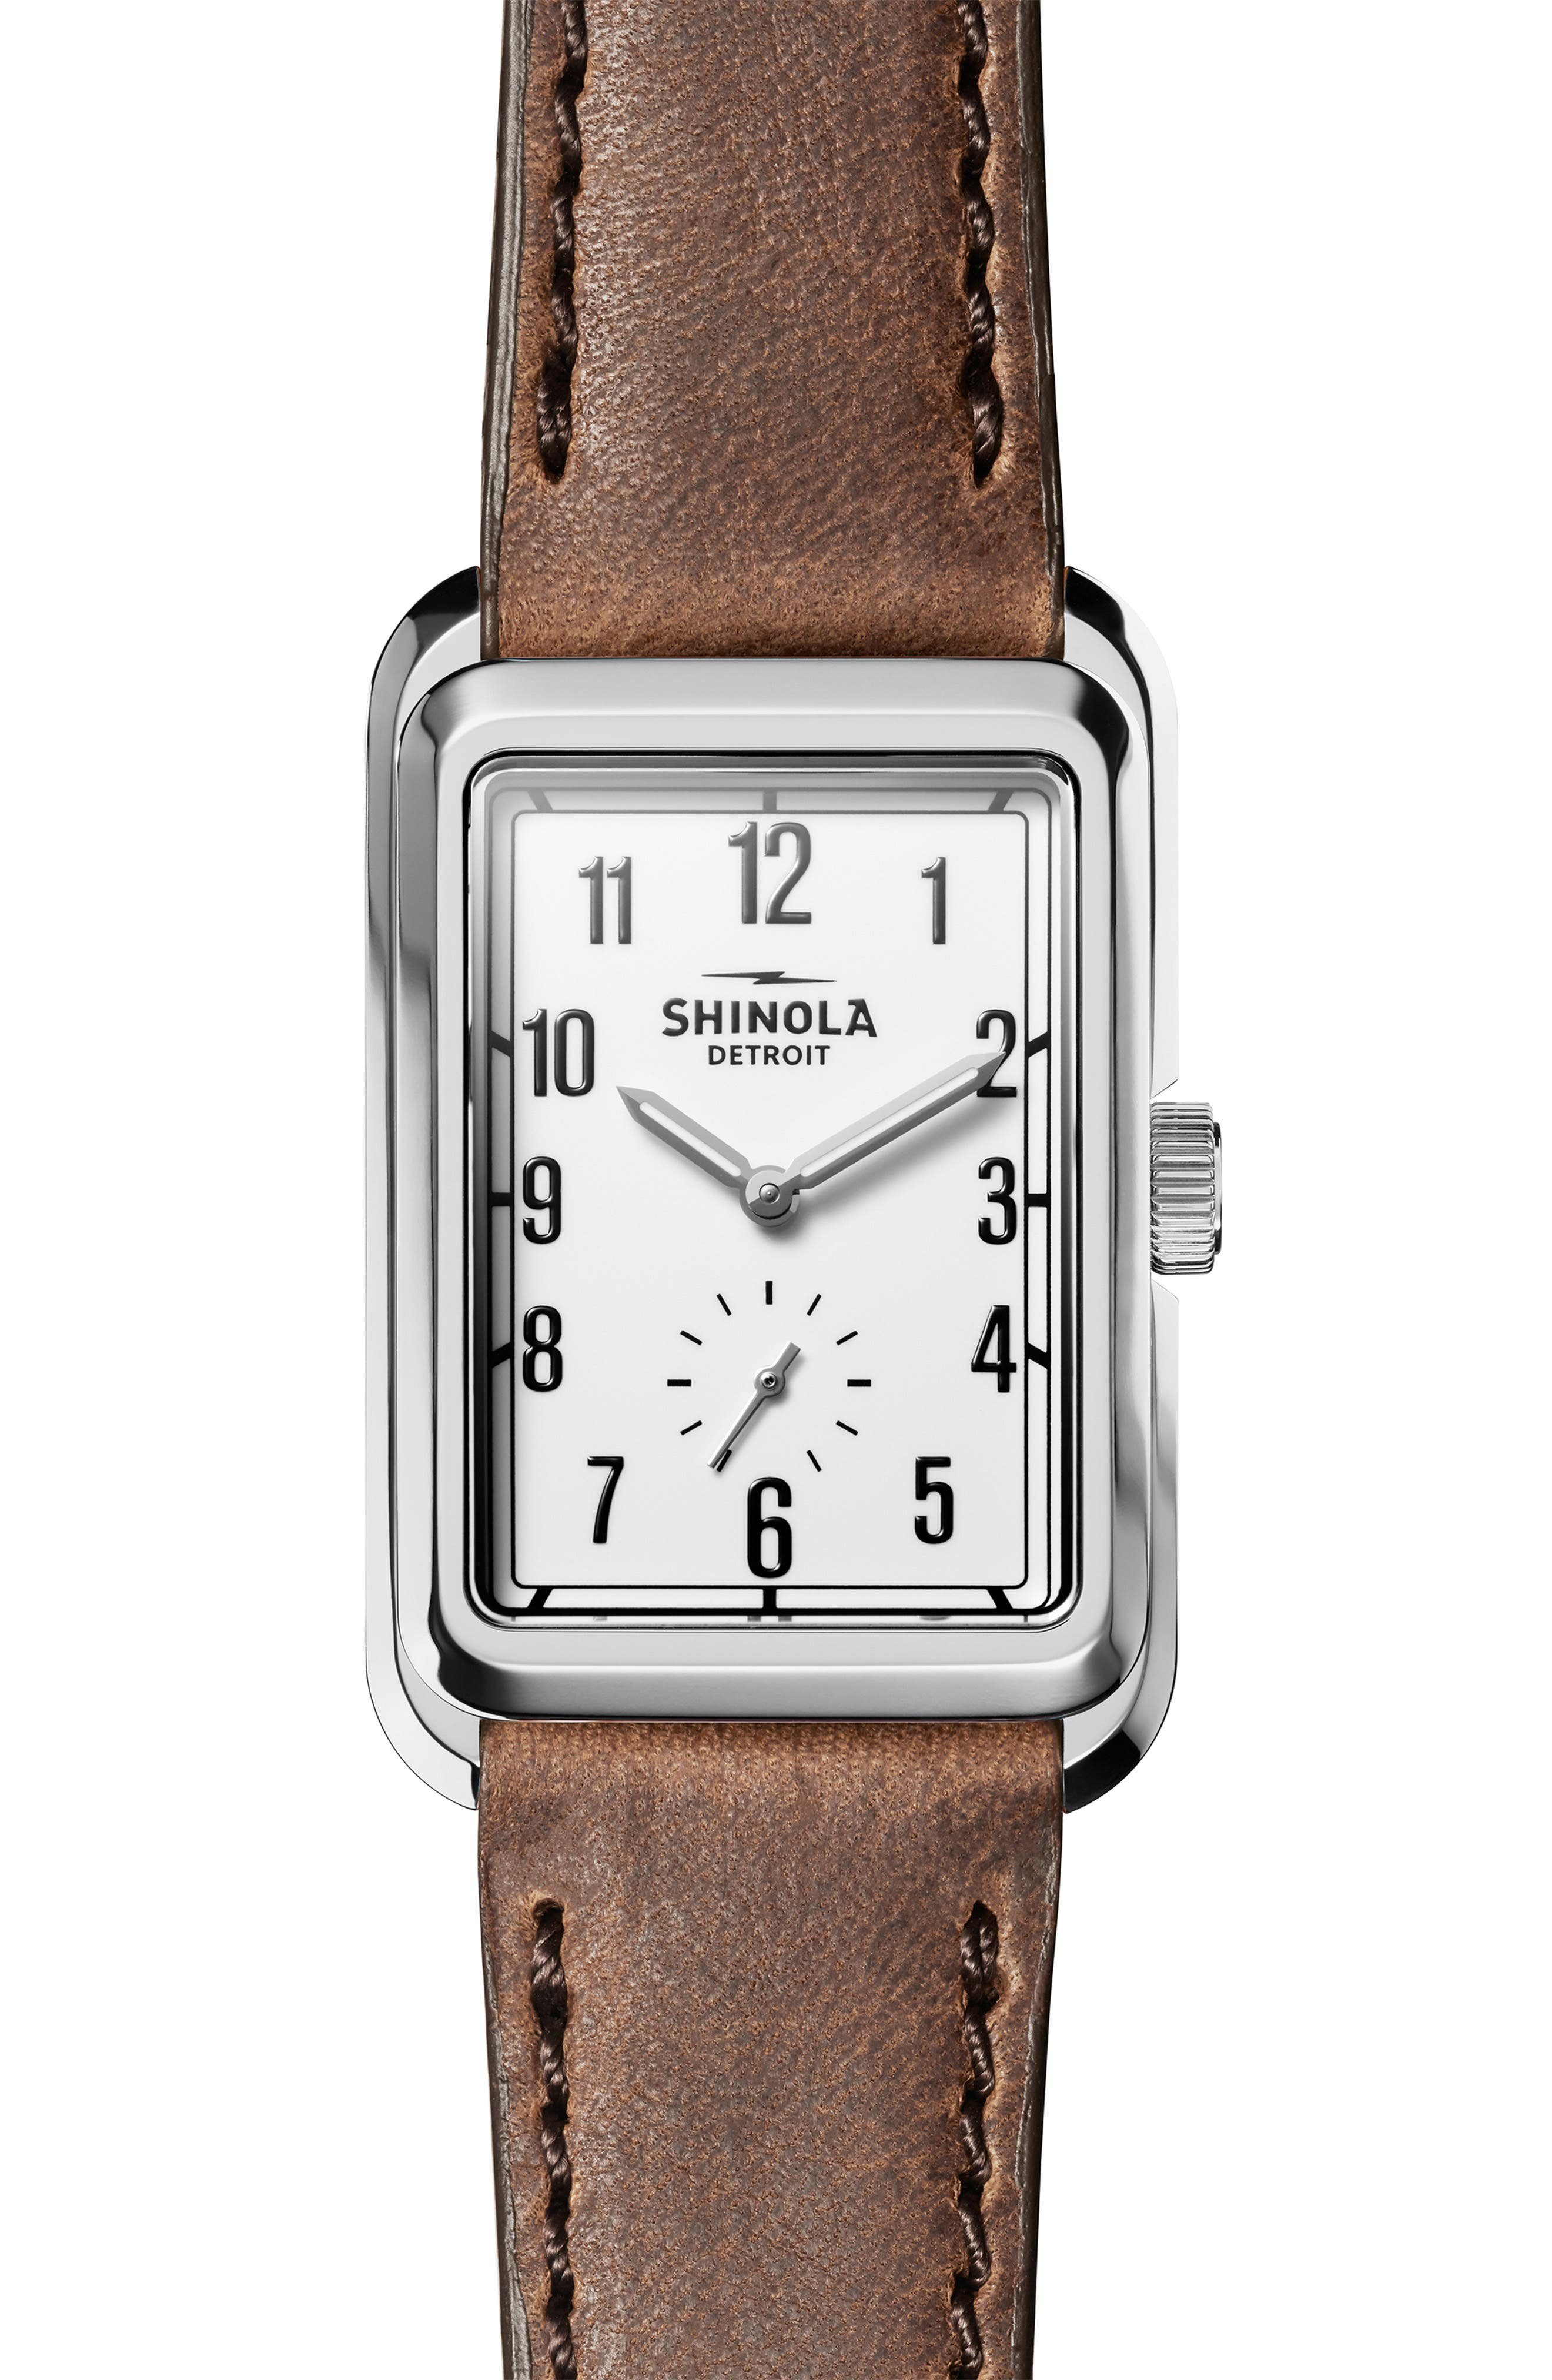 Image of Shinola Men's Omaha Leather Strap Watch, 26mm x 36.5mm